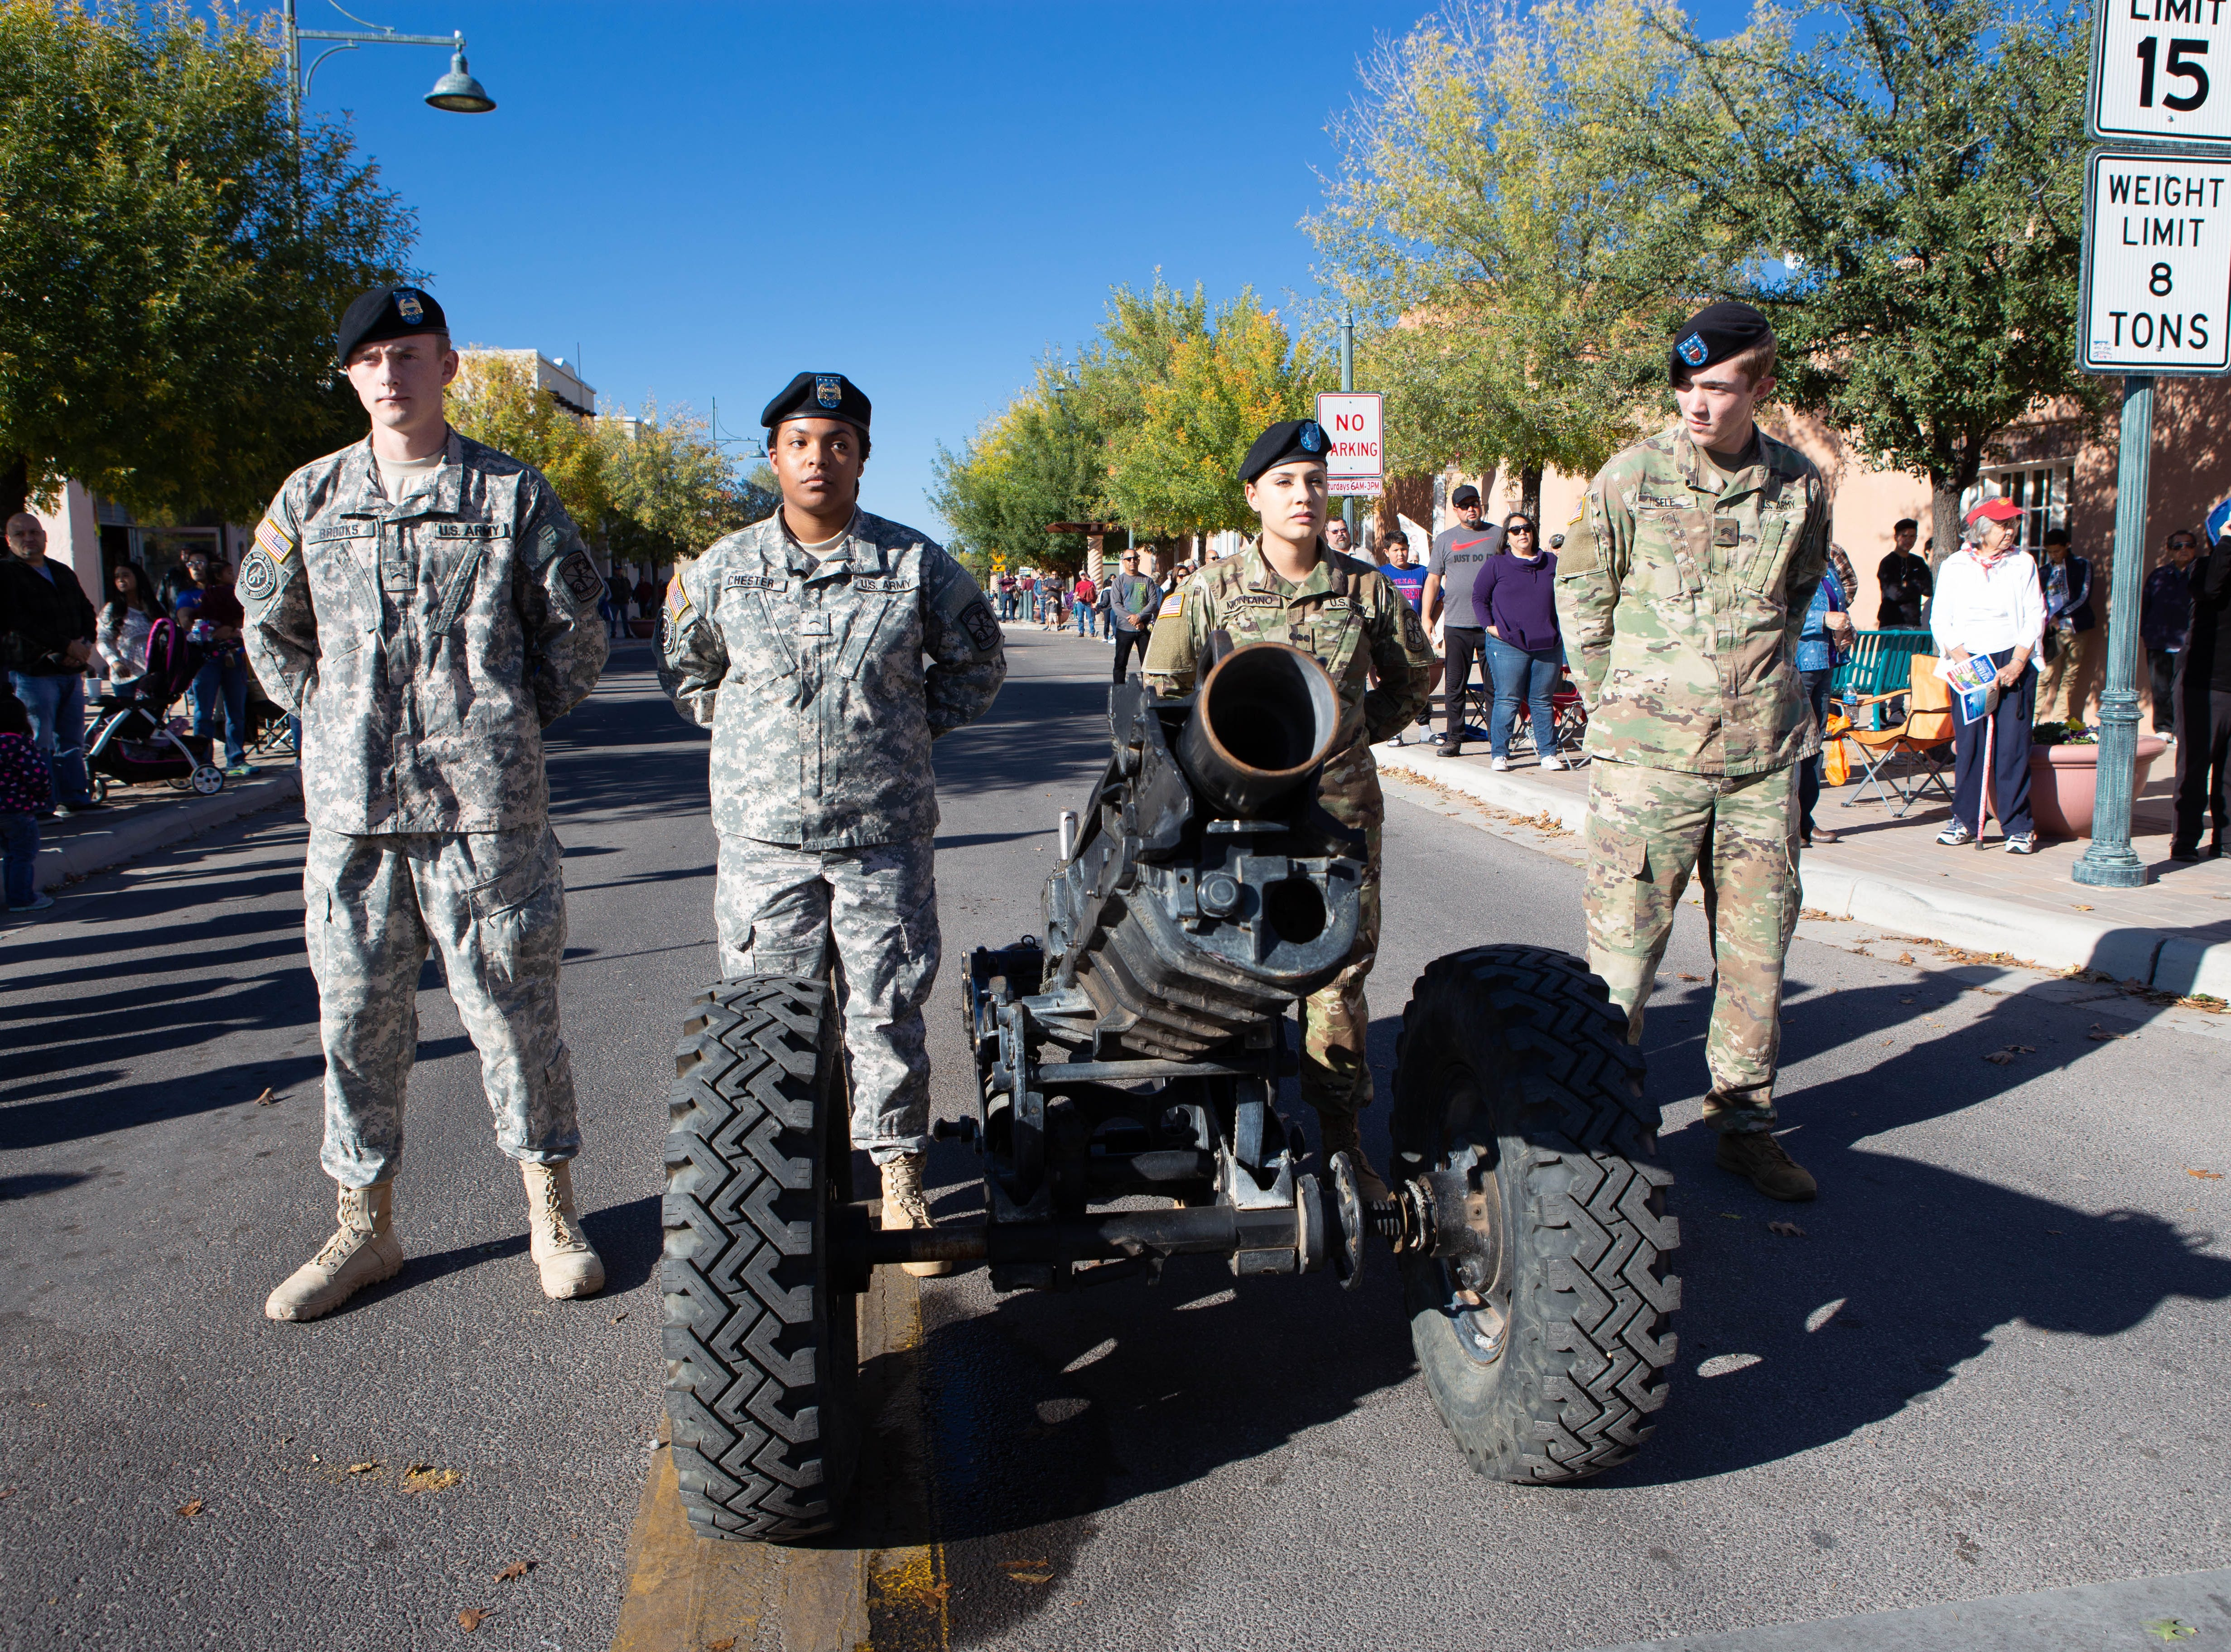 NMSU Bataan Batallion members, left to right, Kabel Brooks, Cynthia Chester, Karlene Montano, and Jacob Sell stand at the ready with the canon awaiting the start of the Veterans Day parade on Nov. 10, 2018.